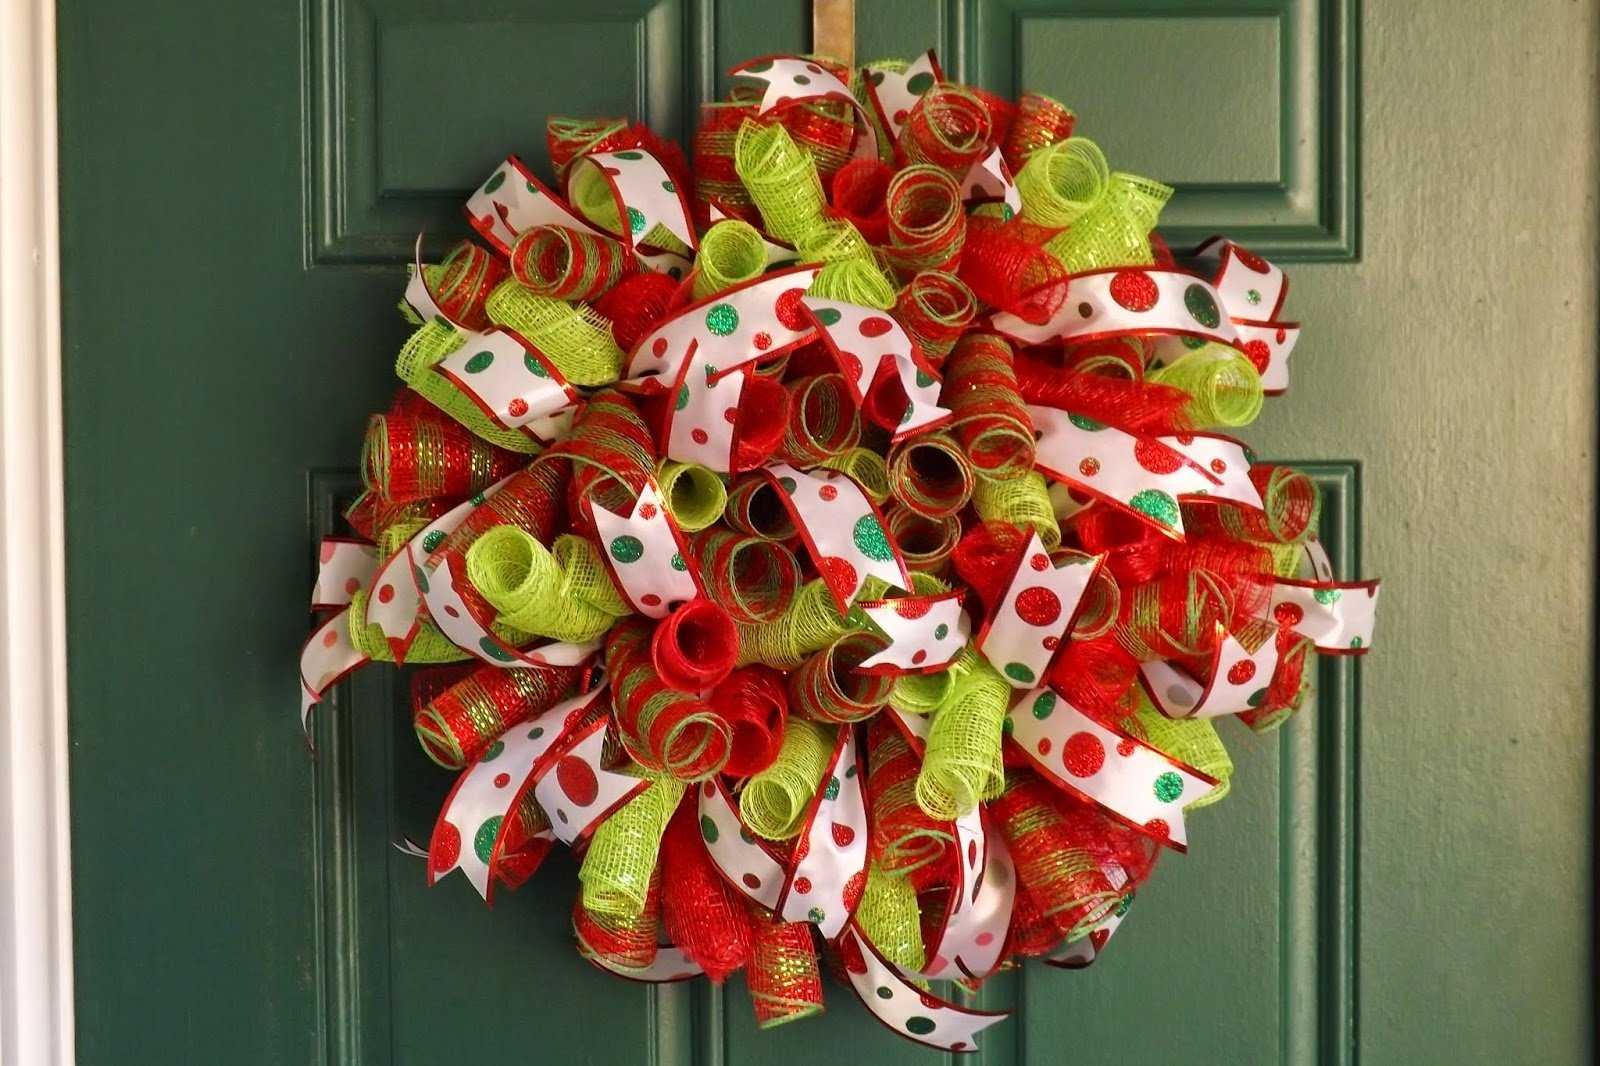 10 Ideal Deco Mesh Christmas Wreath Ideas make spiral deco mesh wreath diy tierra este 9125 2020